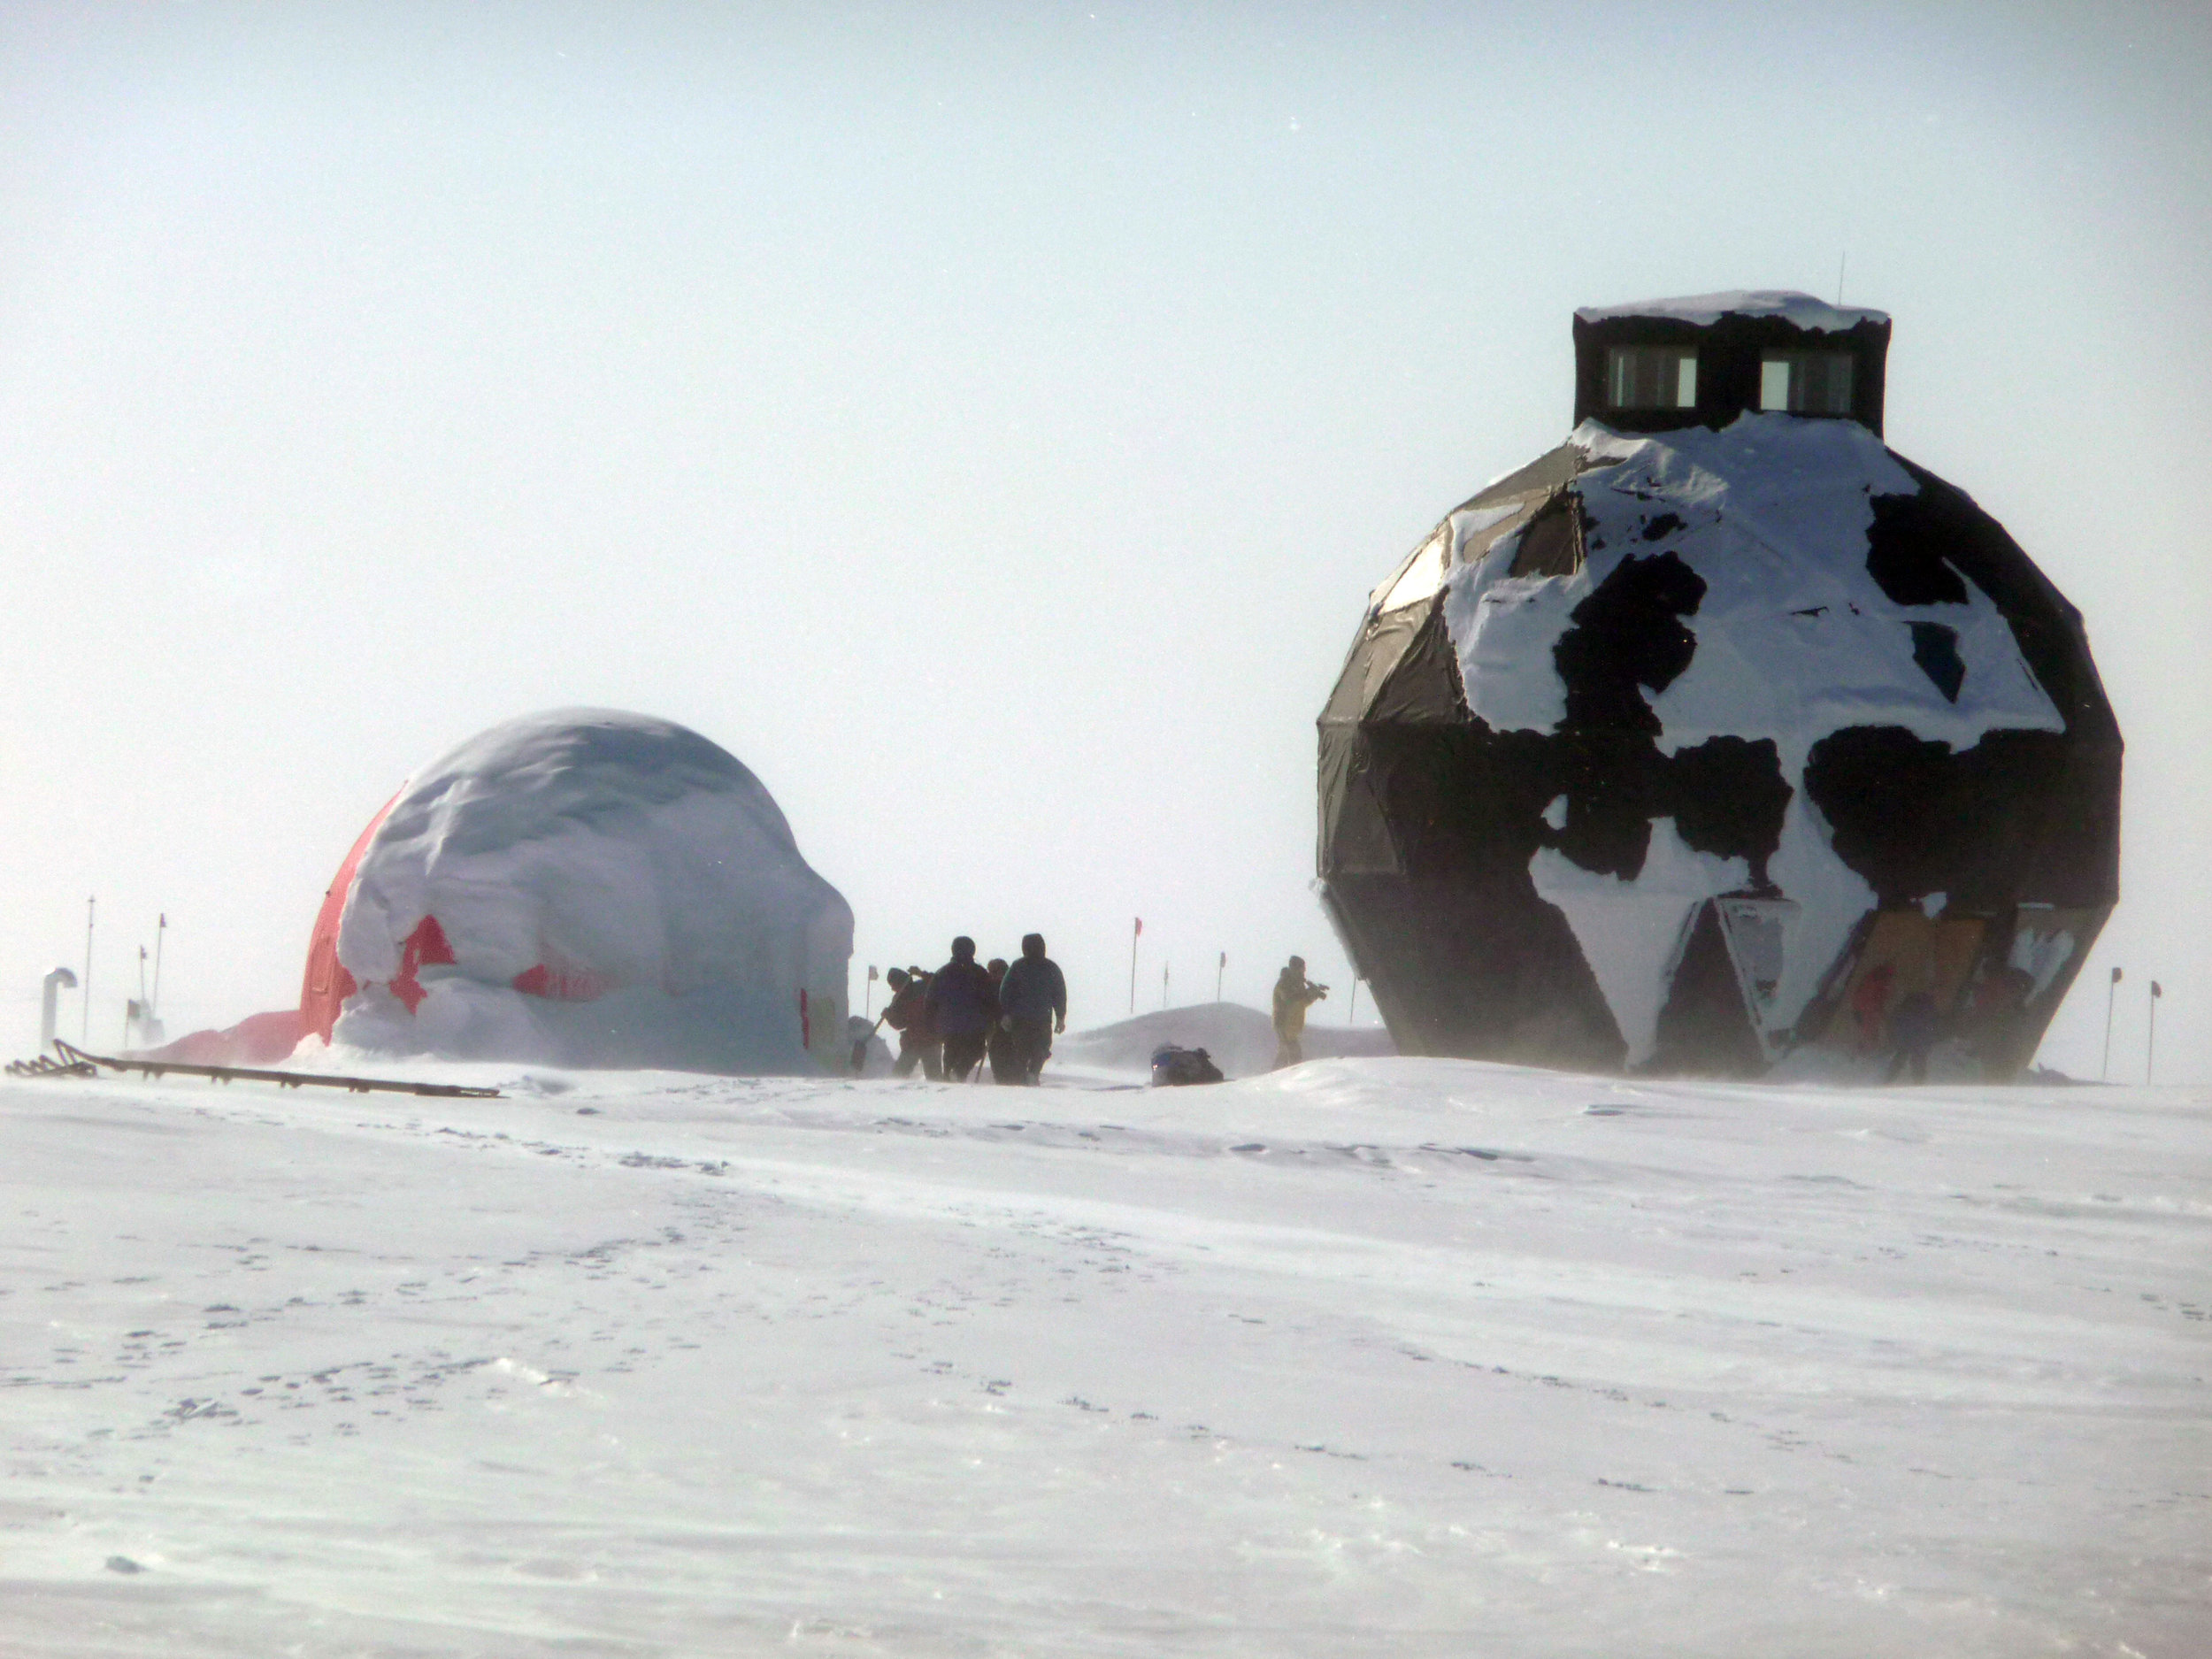 NEEM's iconic black dome. Inside the three-story structure: kitchen, bathroom, dining area, lounge, some sleeping quarters, and, at the top, the field master's roost, wherein most communications work is conducted. Photo: NEEM ice core drilling project, www.neem.ku.dk.